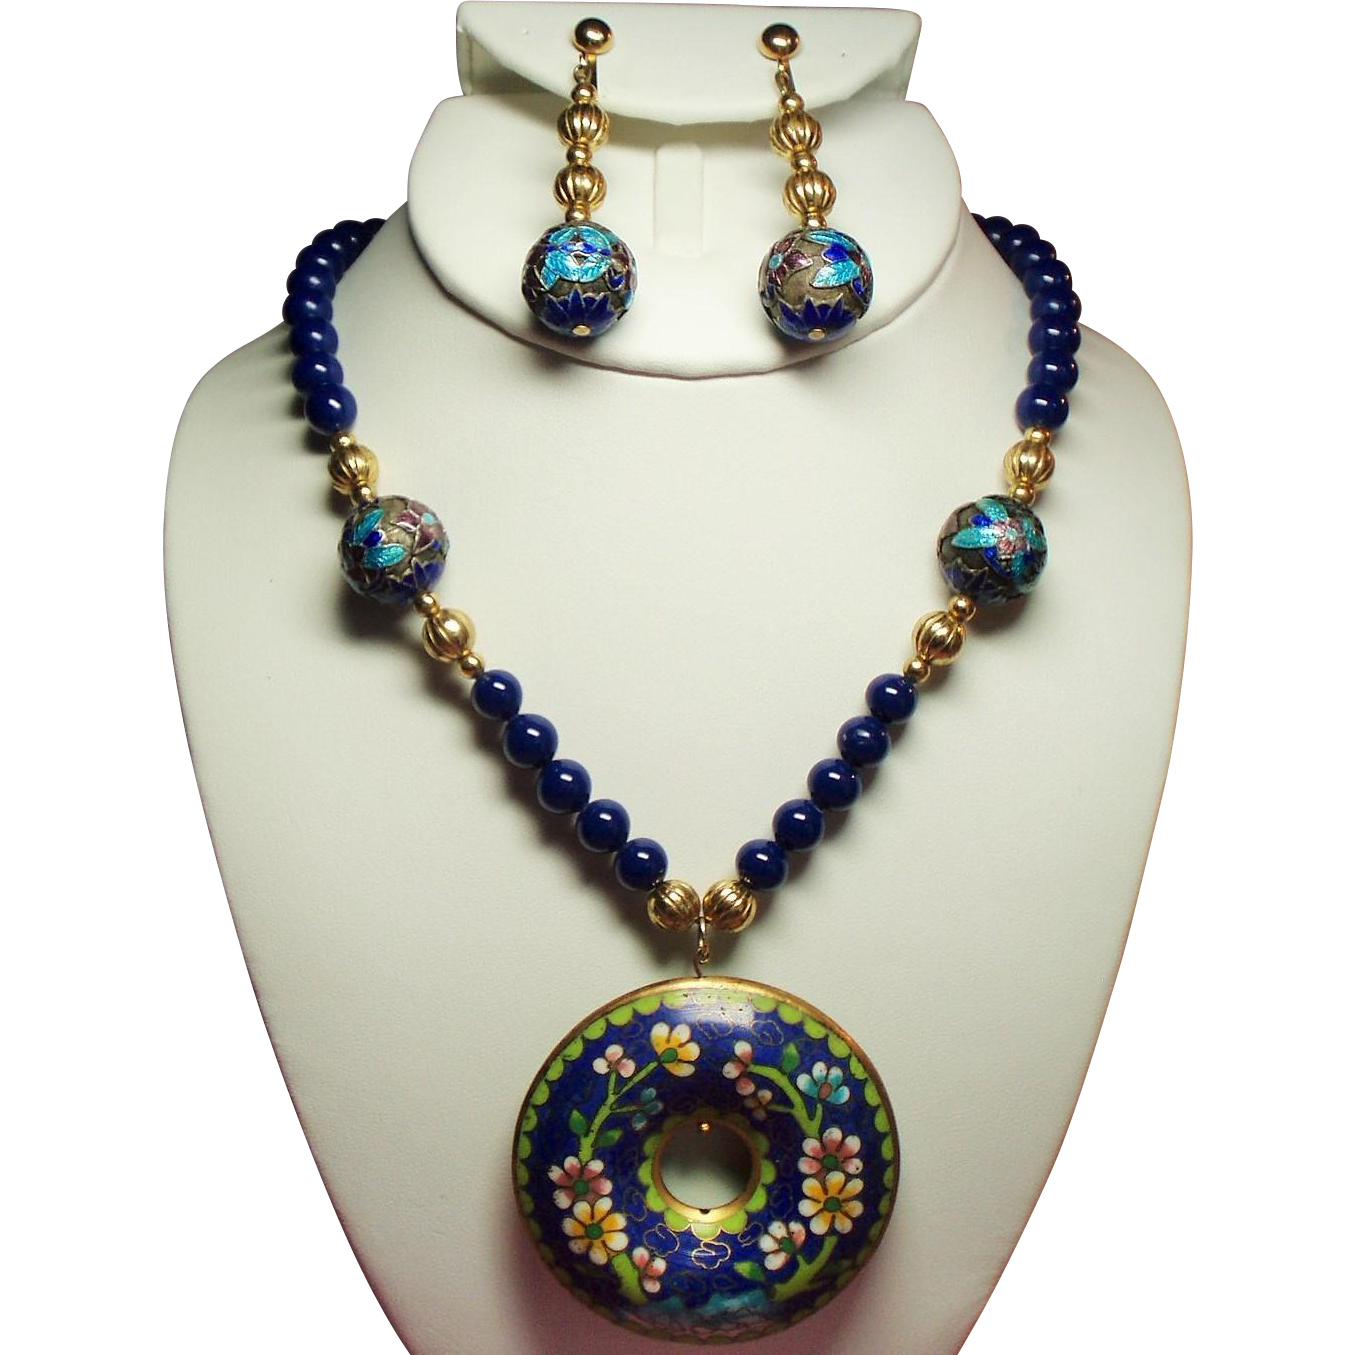 Vintage Cobalt Blue Glass Bead Long Necklace Cloisonne Donut Pendant Long Drop Earrings Demi Parure